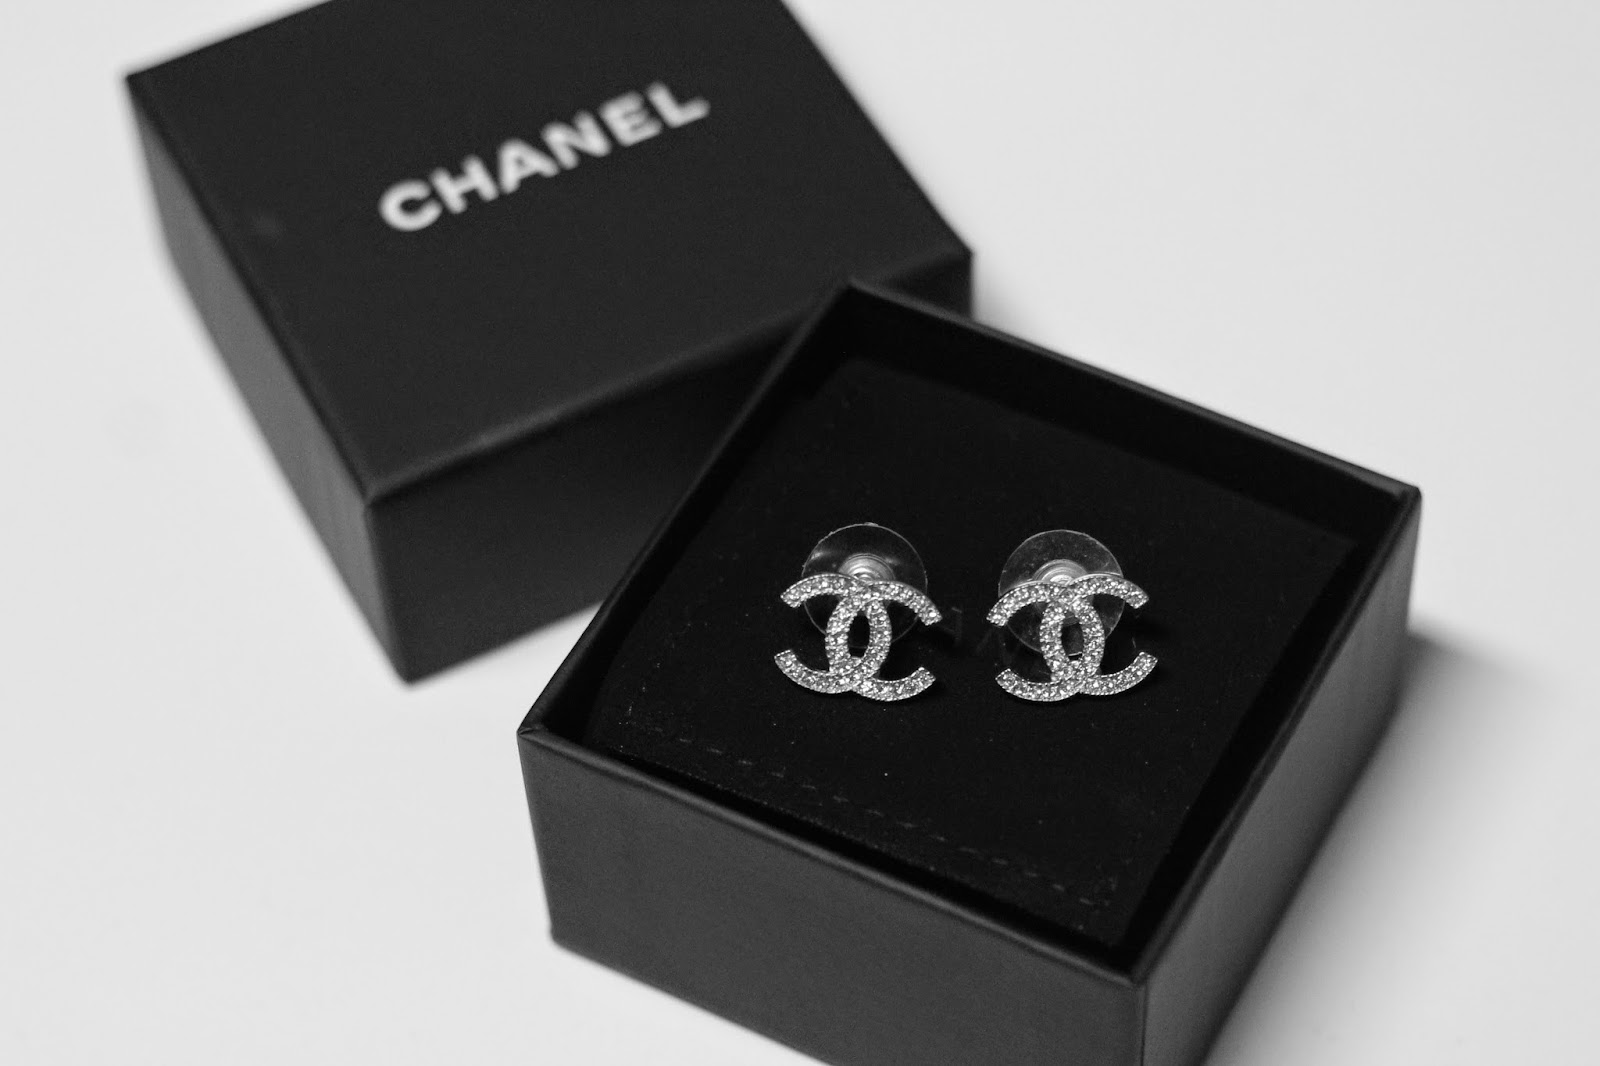 Miss City Chic Cur Obsession Chanel Cc Earrings